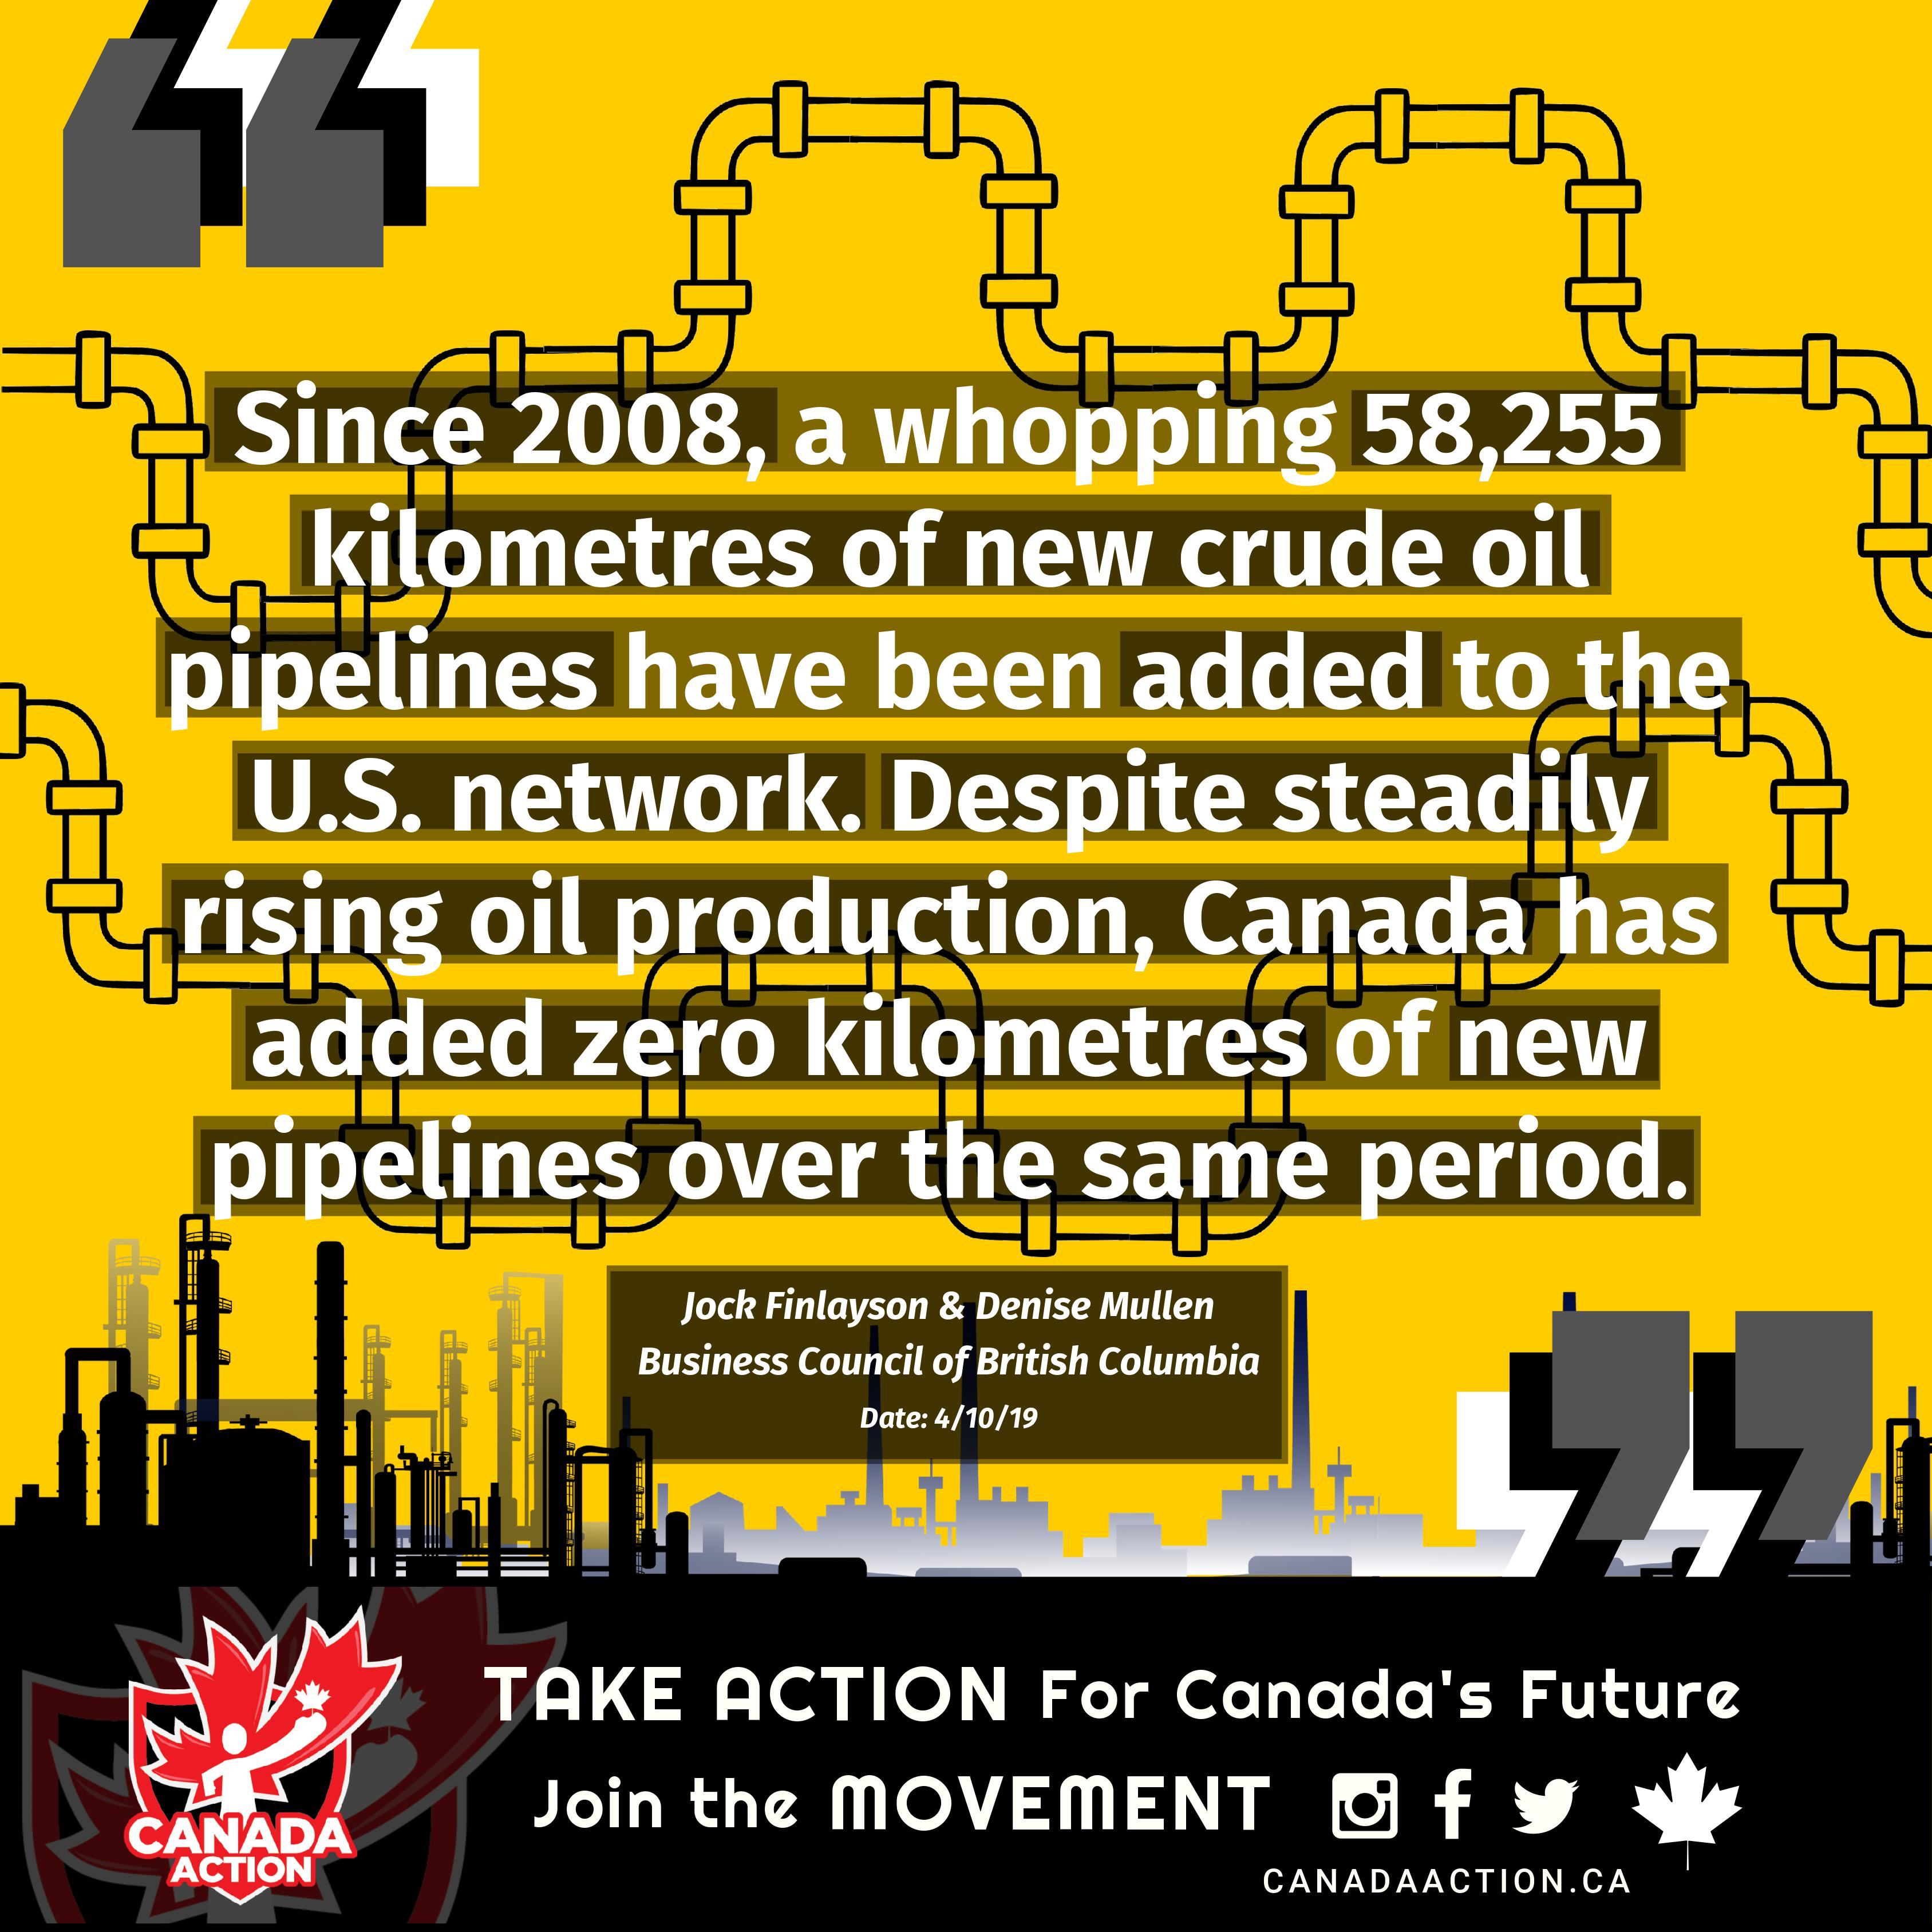 Business Council of British Columbia: Pipelines in Canada and Usa